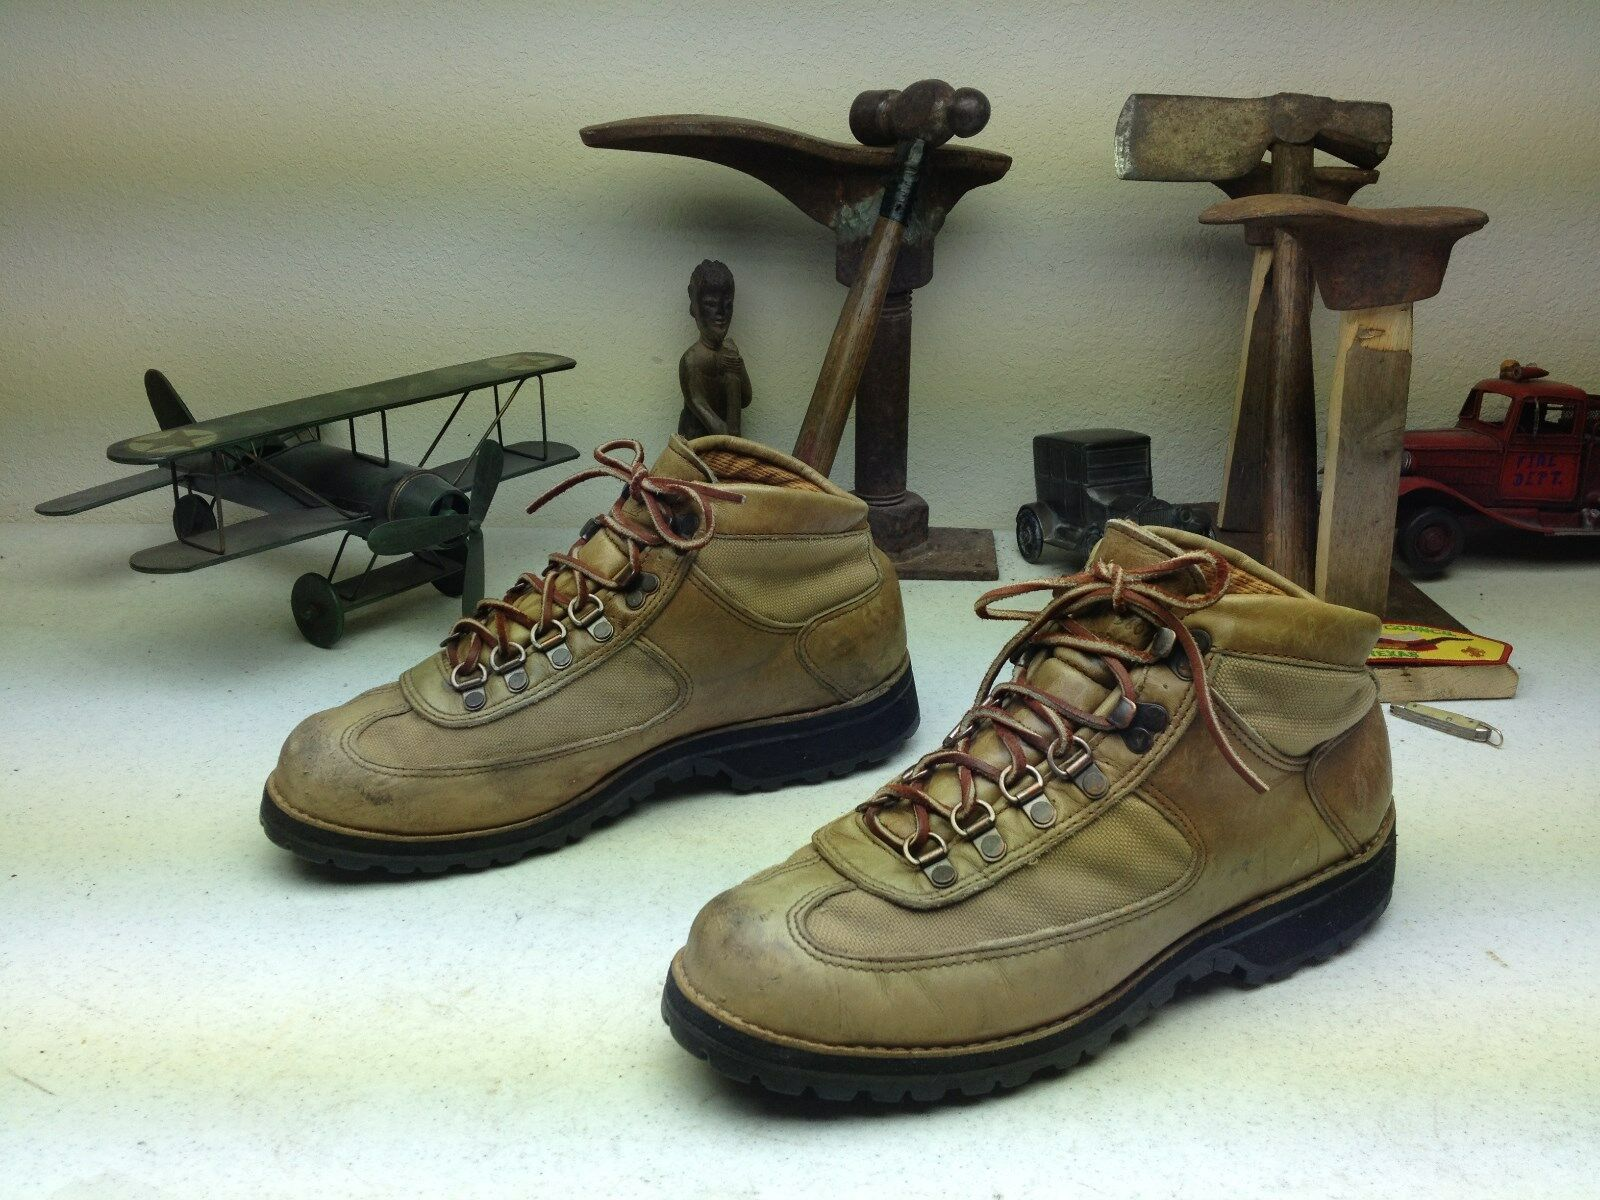 DISTRESSED DANNER STYLE 8364 TAN BLONDE DESERT PACKER WORK CHORE BOOTS SIZE 10 M